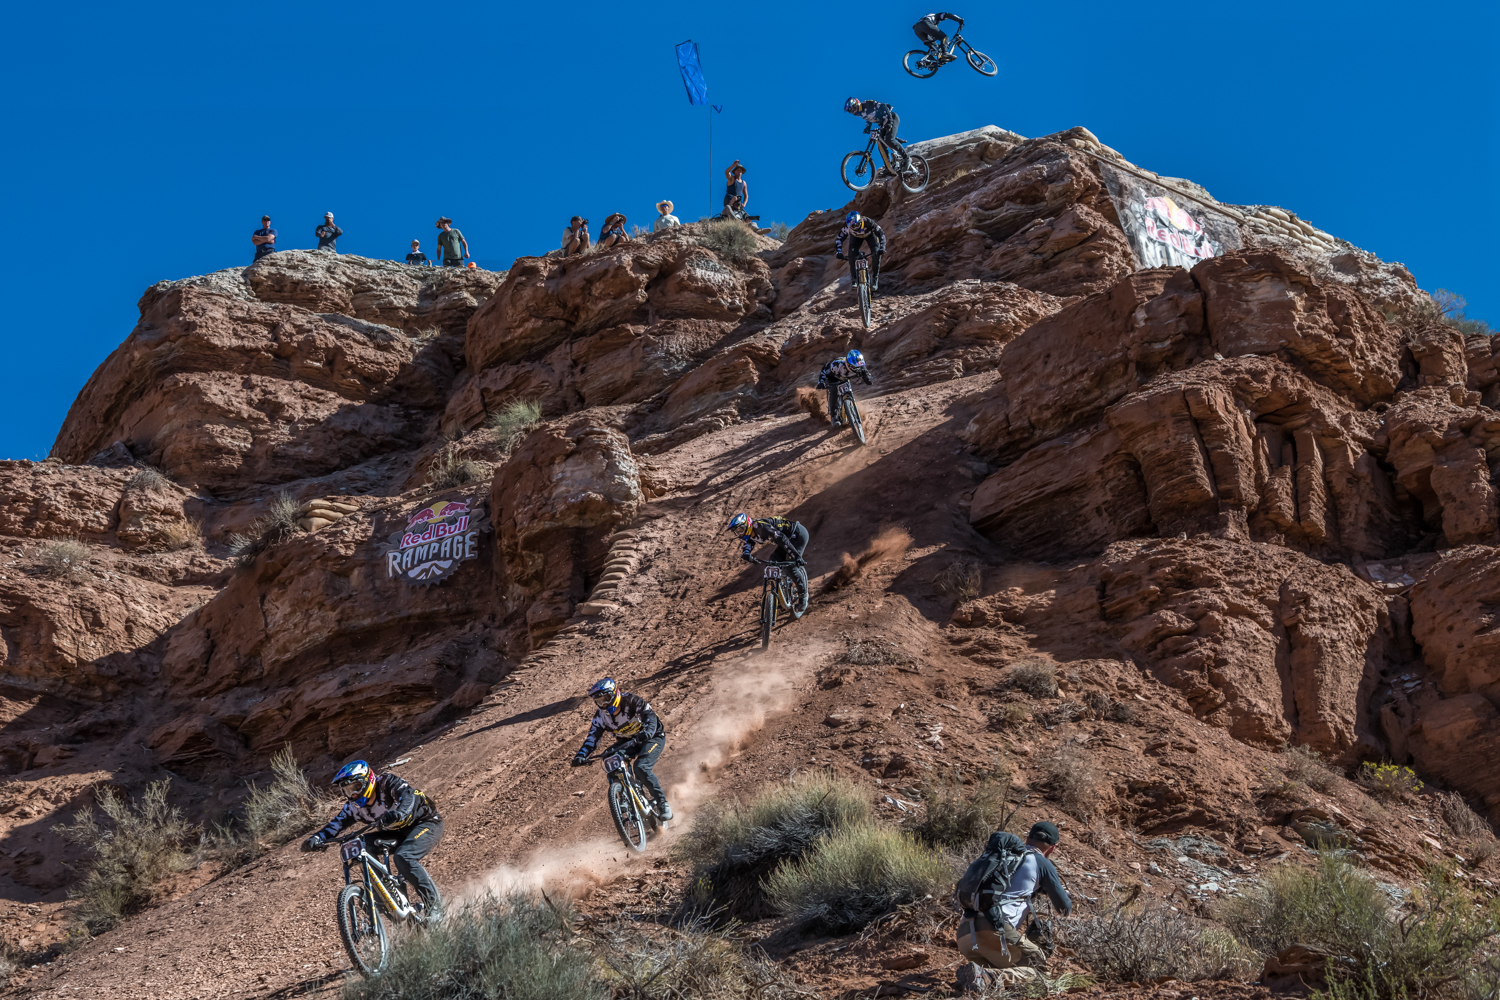 Red Bull Rampage >> Red Bull Rampage 2018 Daredevil Guinea Pigs Break Ground On New